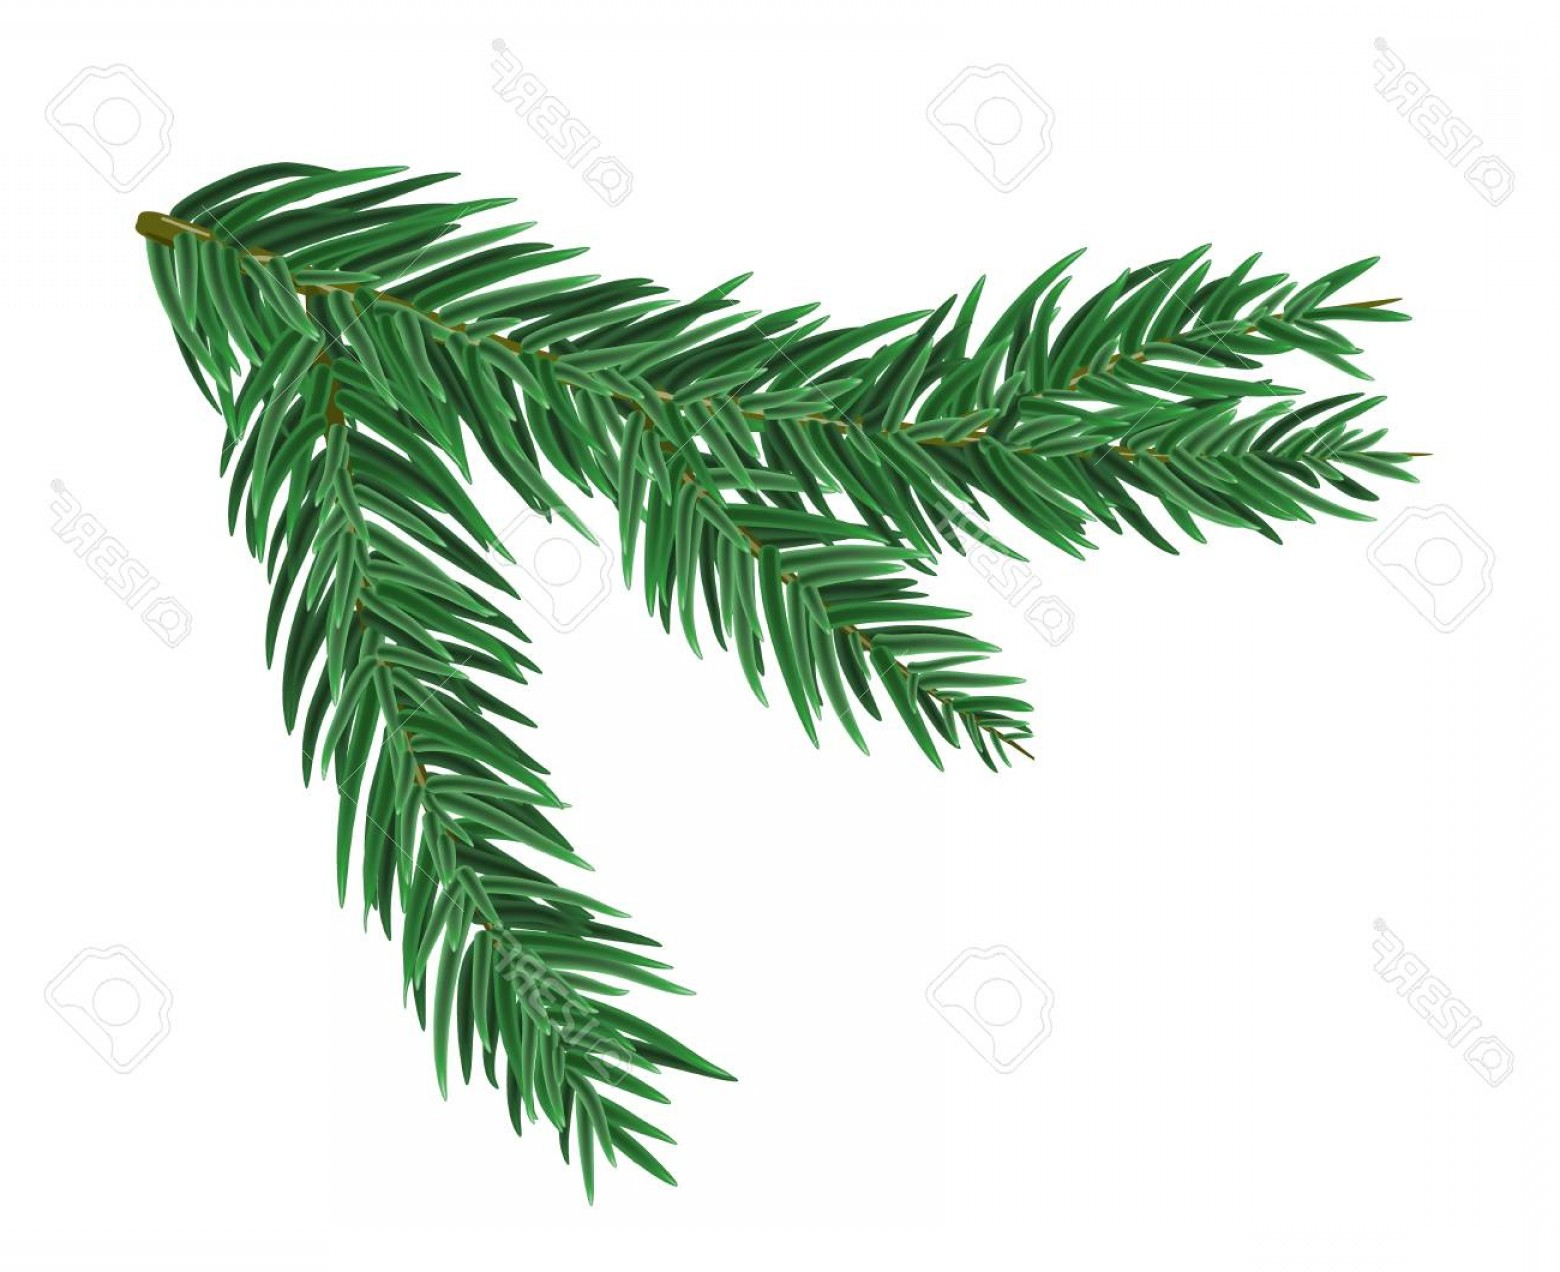 Pine Leaf Vector: Photostock Vector Green Lush Spruce Or Pine Branch Vector Illustration